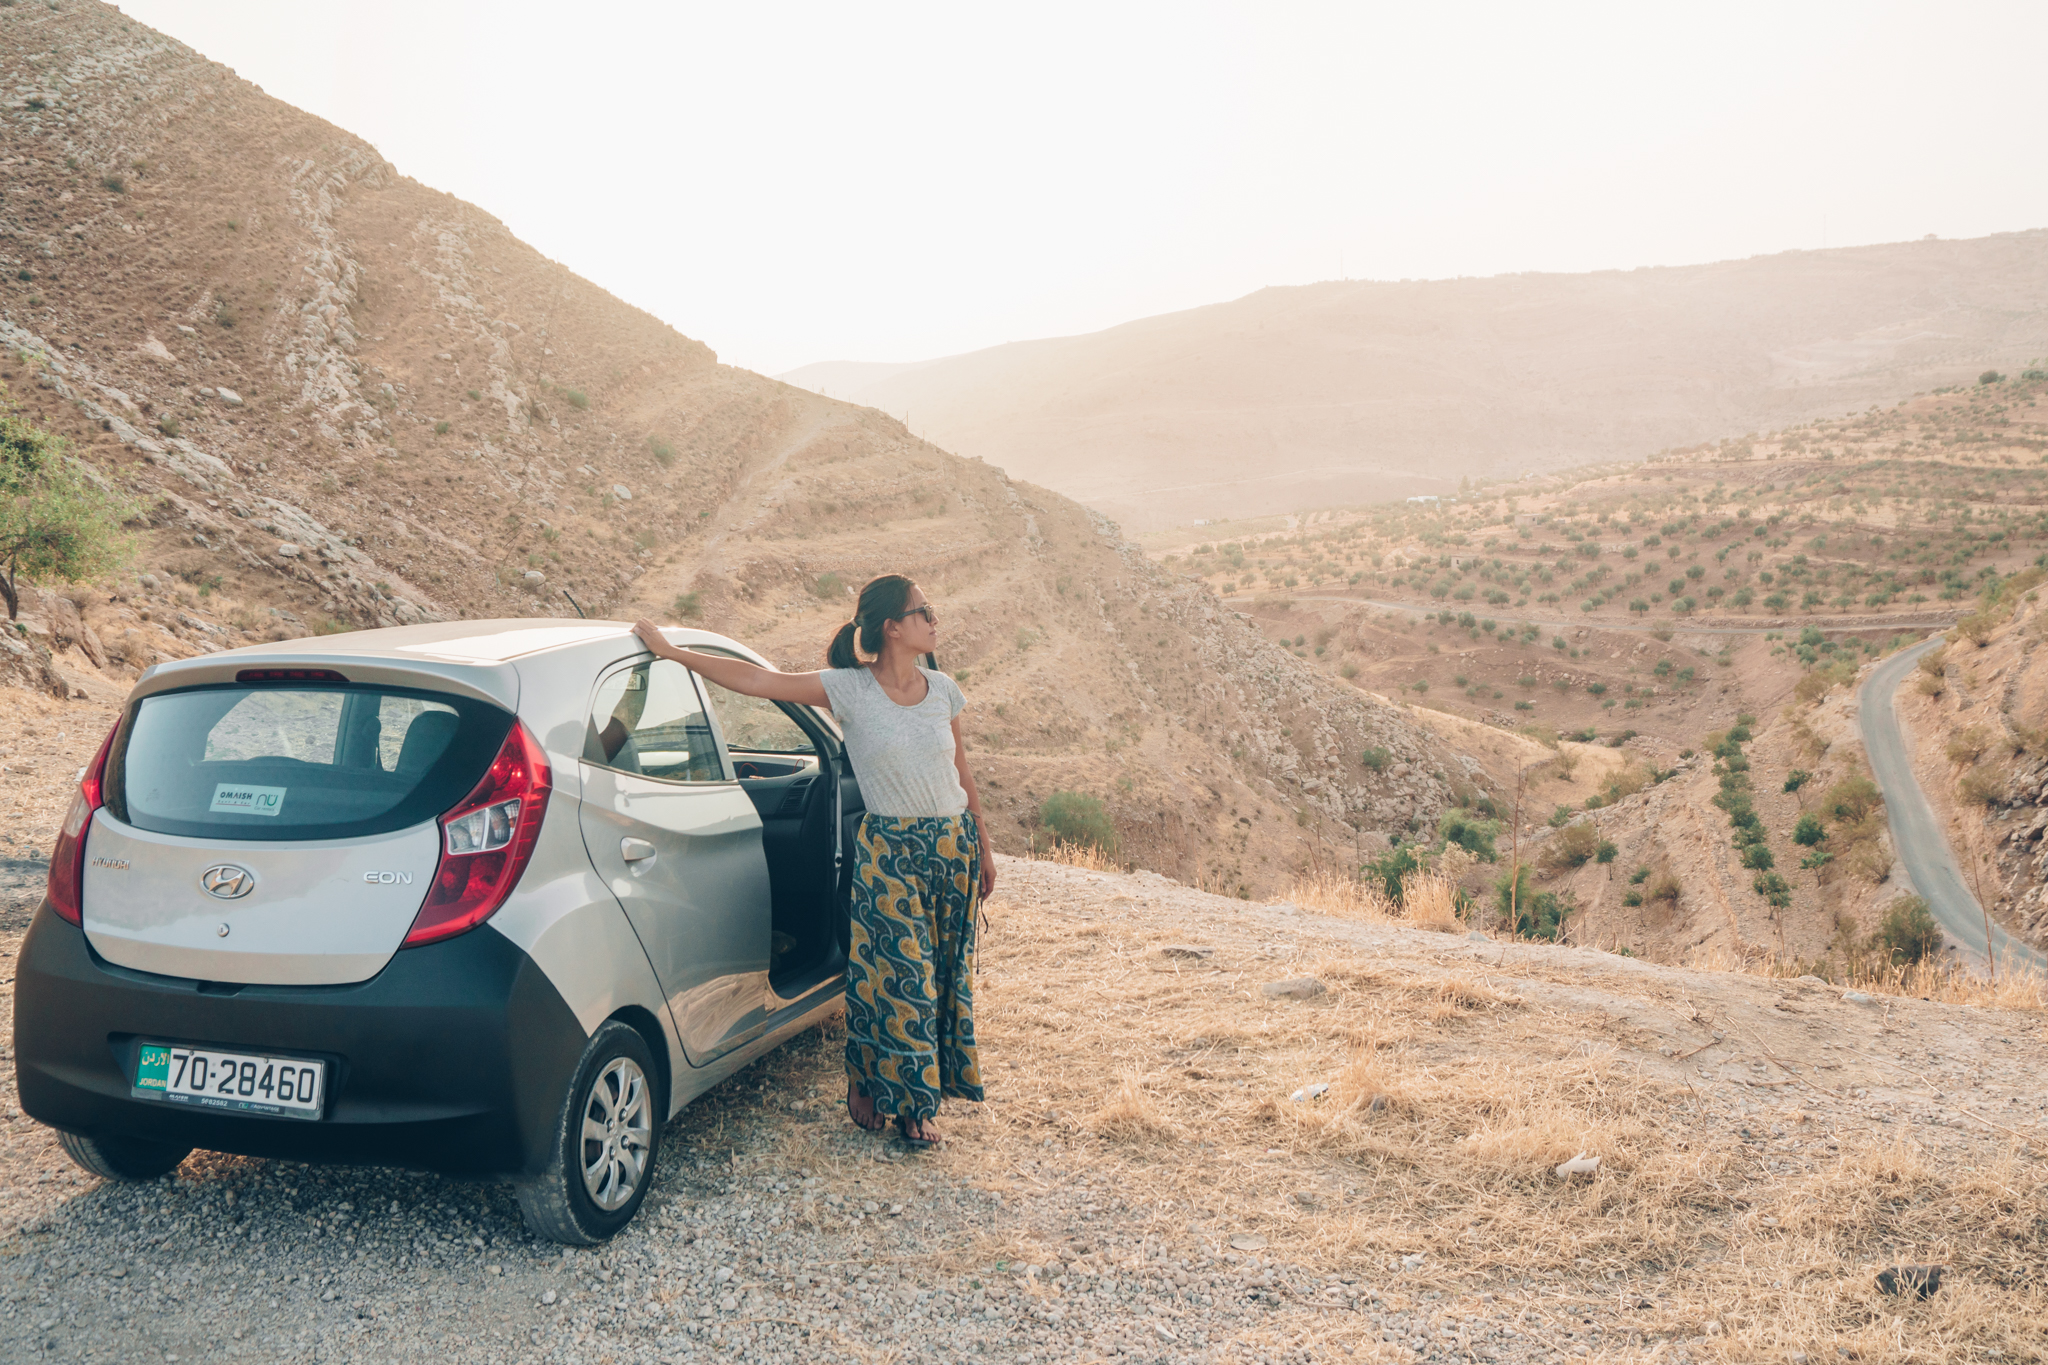 Woman standing next to silver car overlooking Jordan valley and mountains